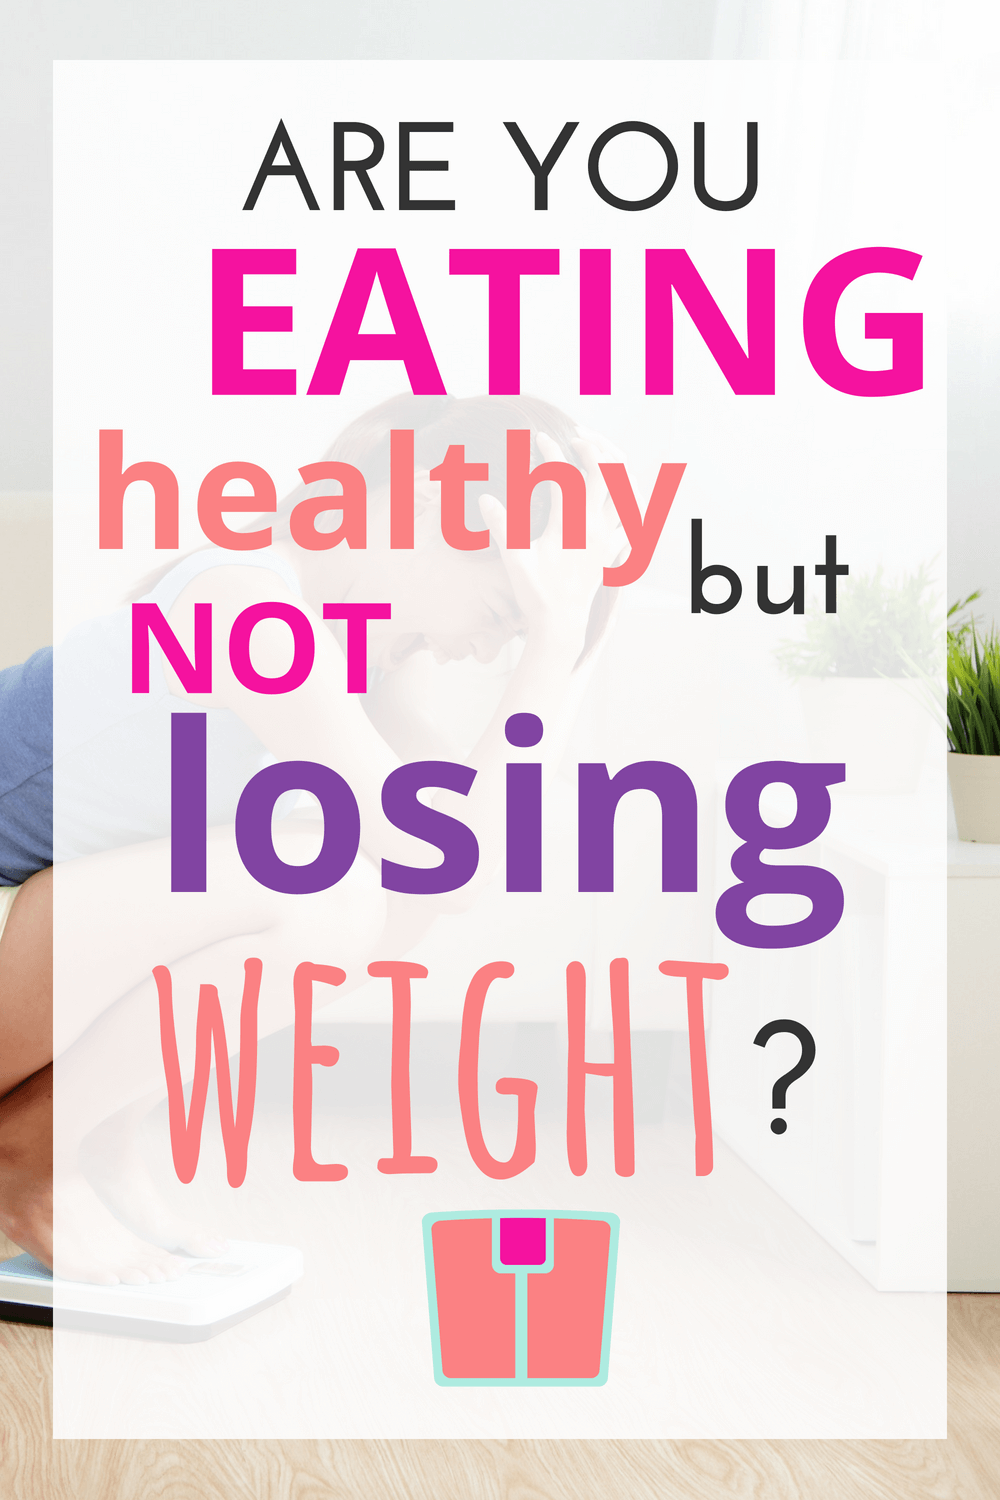 Eating healthy and exercising but not losing weight